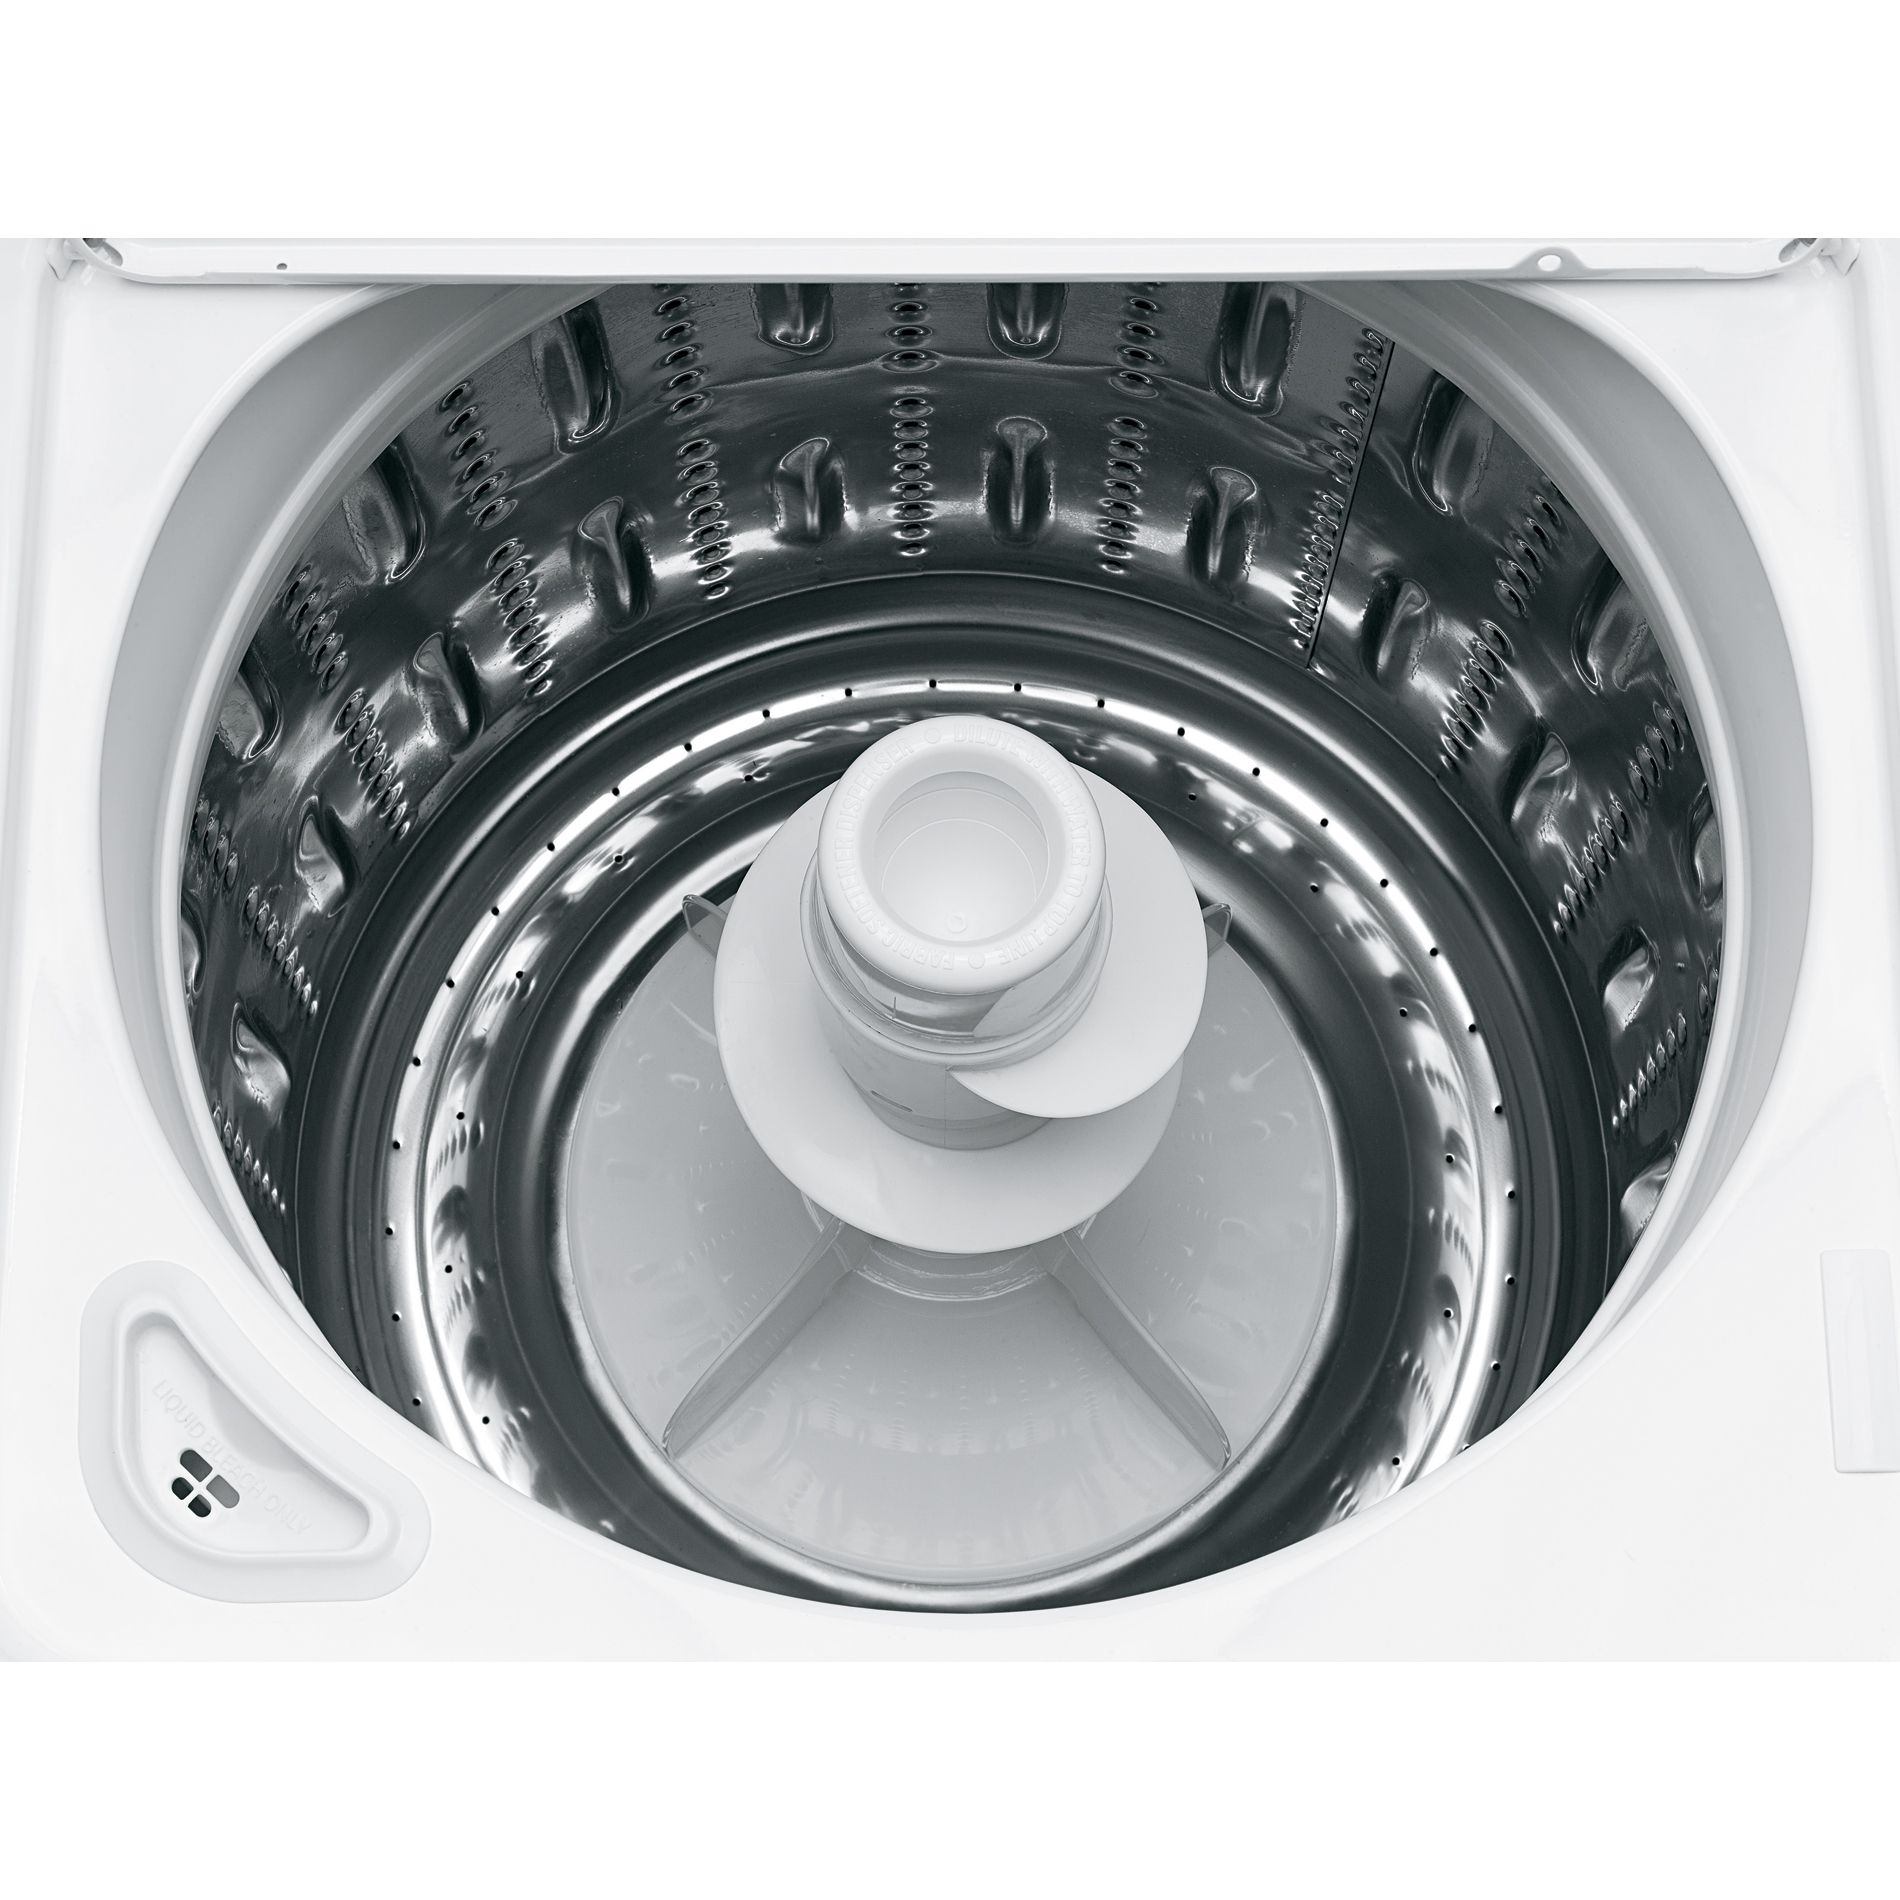 GE 3.9 cu. ft. Top Load Washer - White